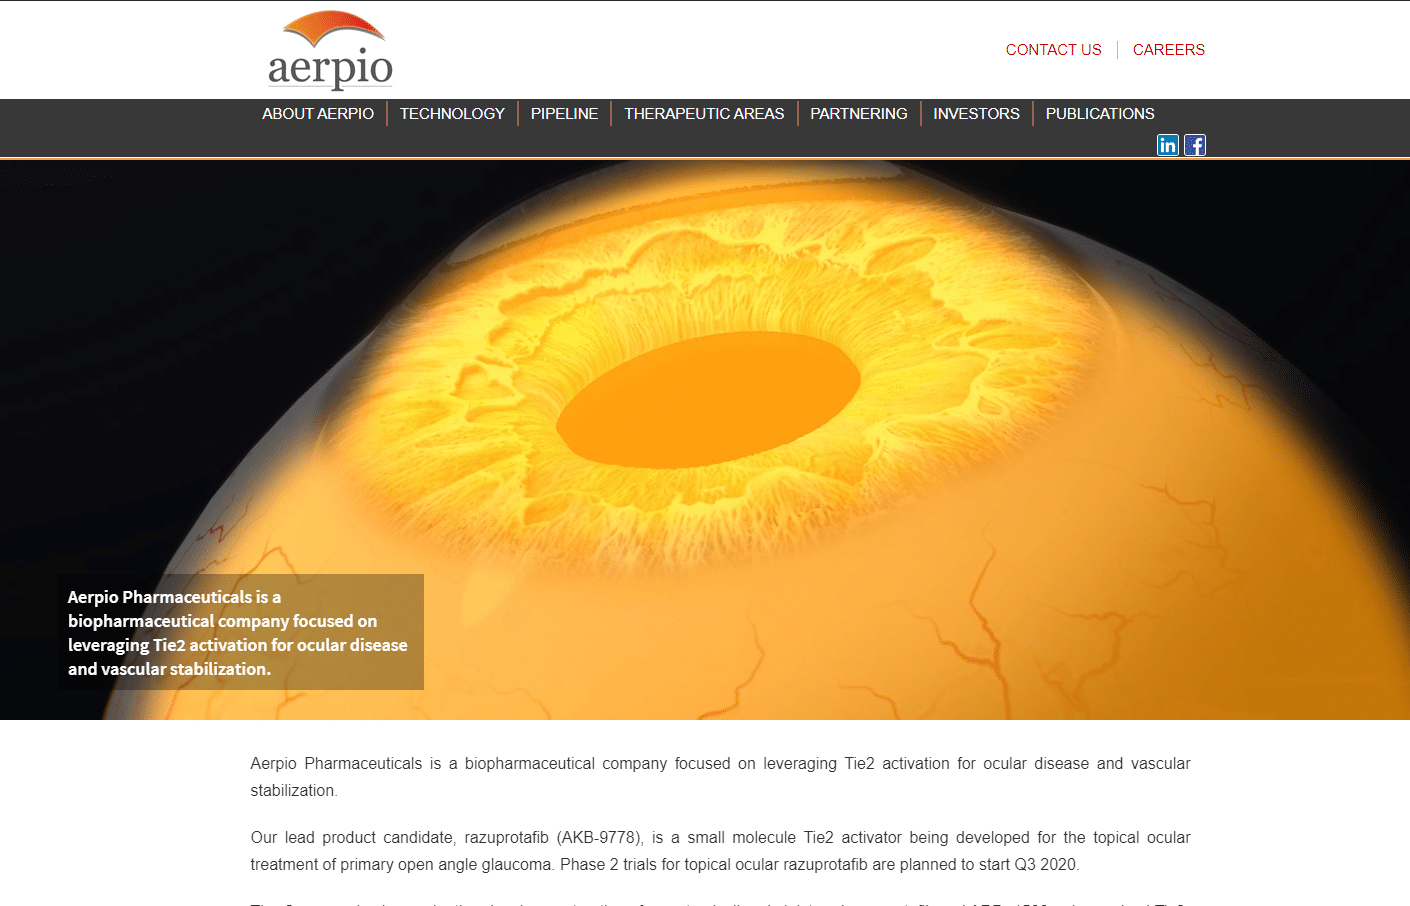 Aerpio Pharmaceuiticals biotech website